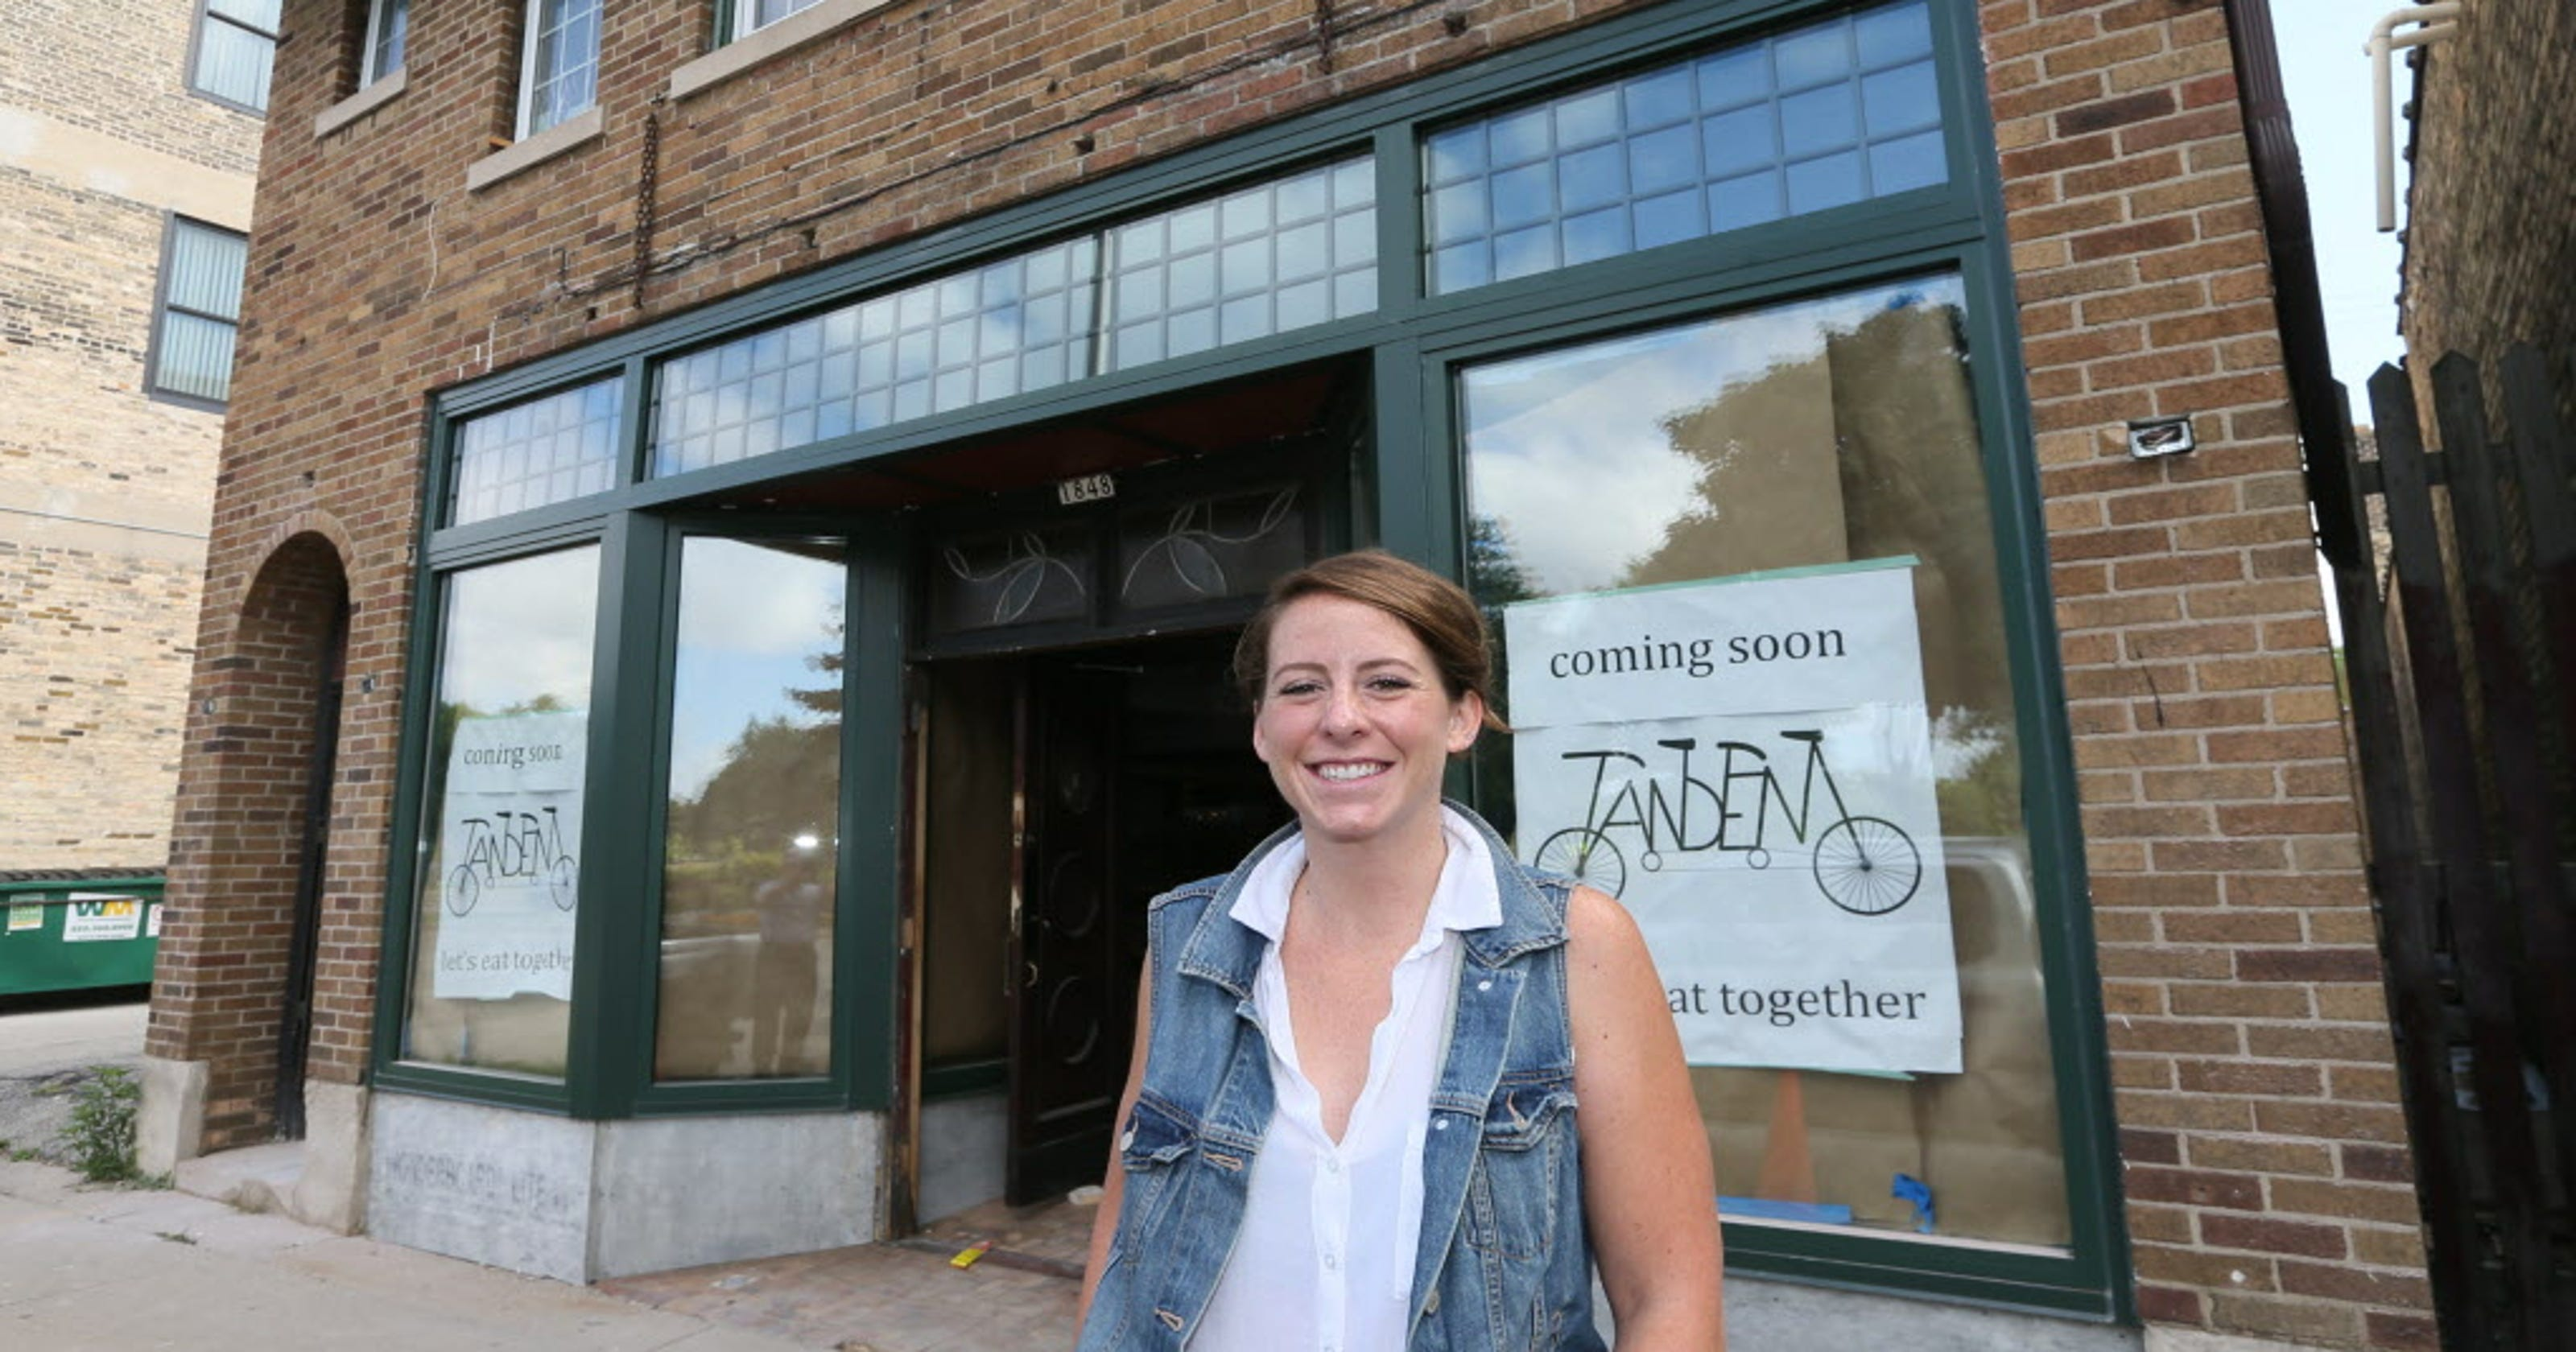 The Tandem: A new restaurant with 2 purposes